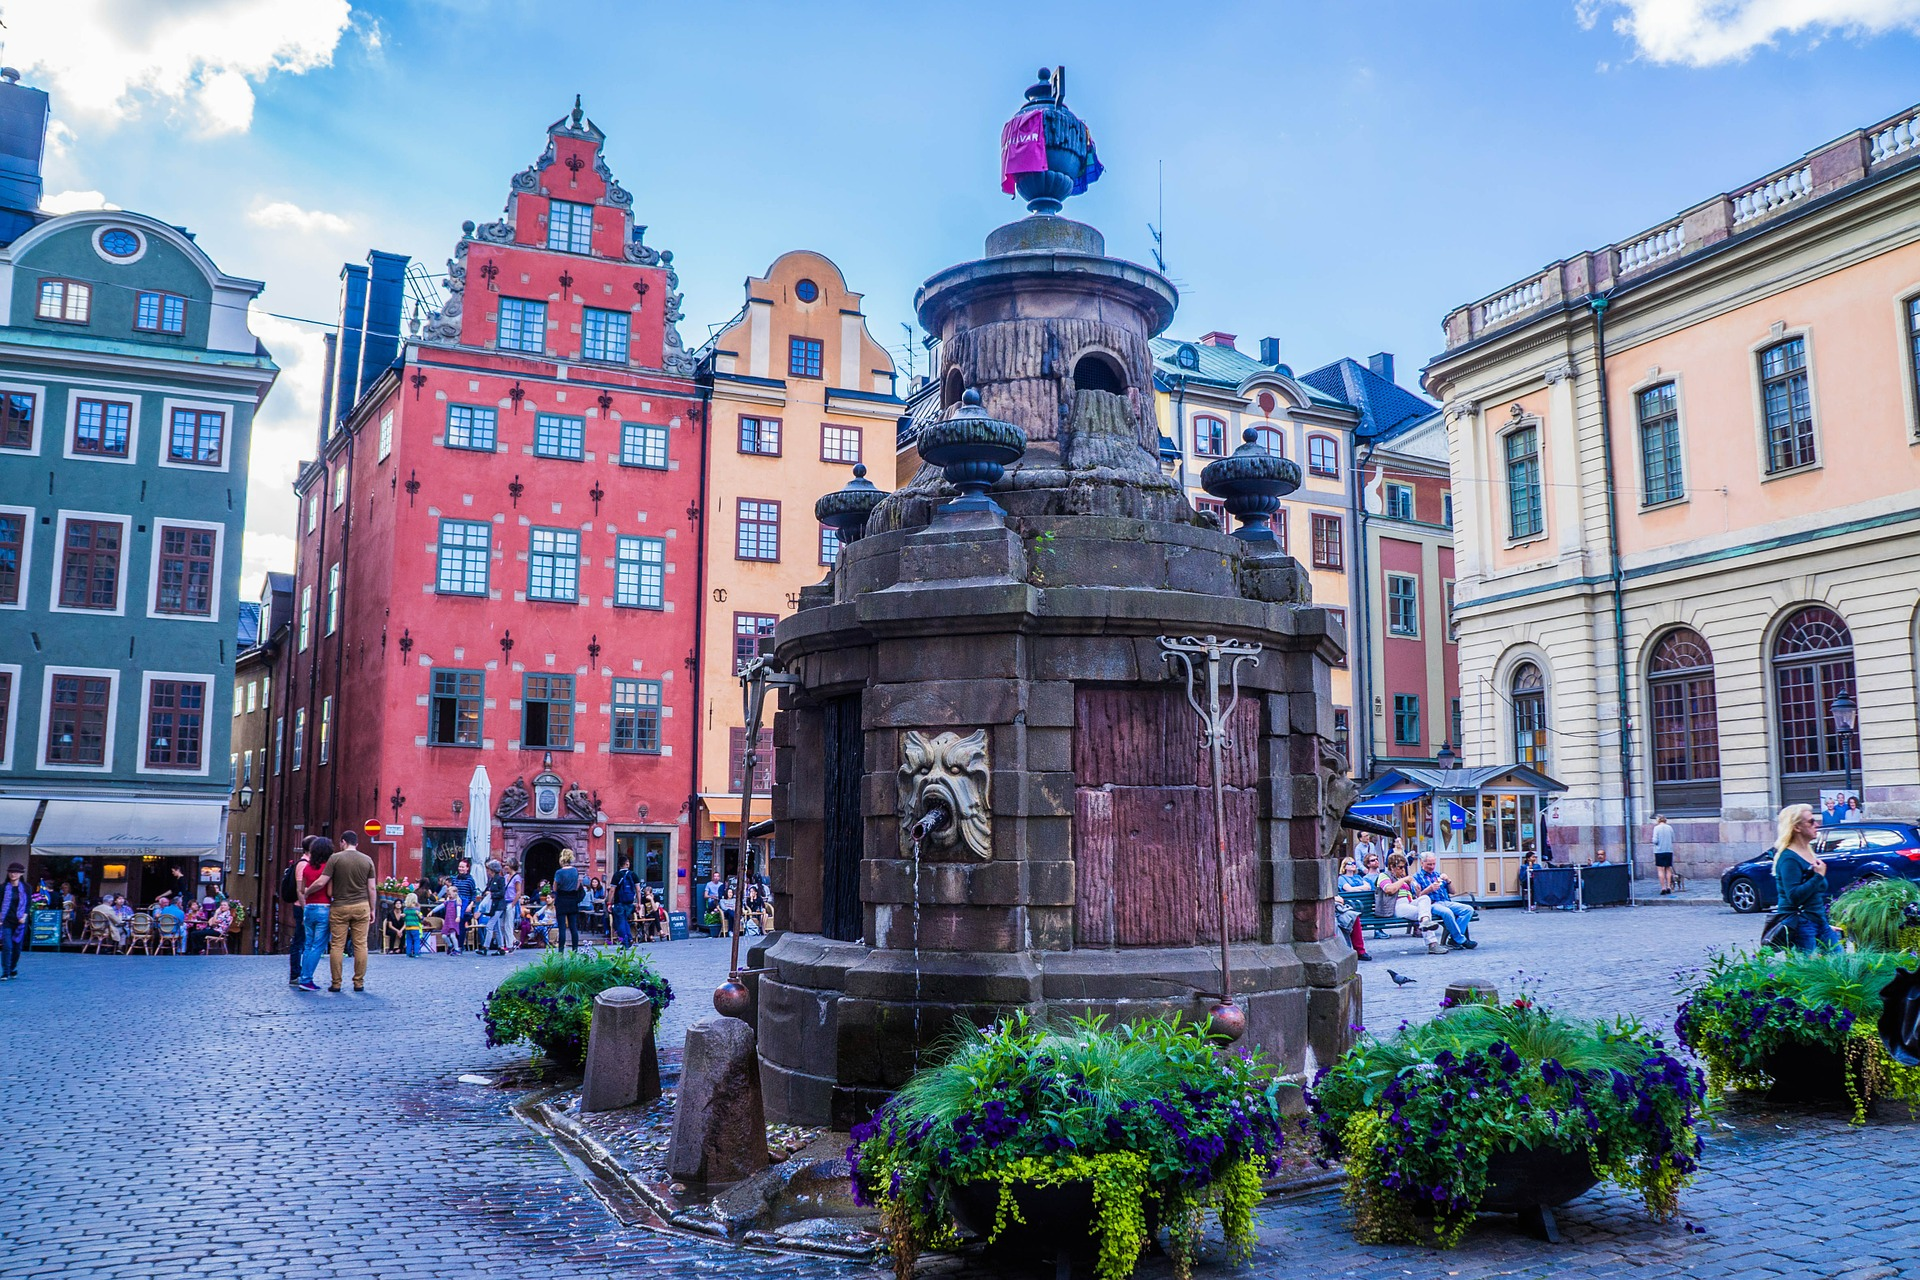 Stockholm, Sweden Image by Michelle Maria from Pixabay